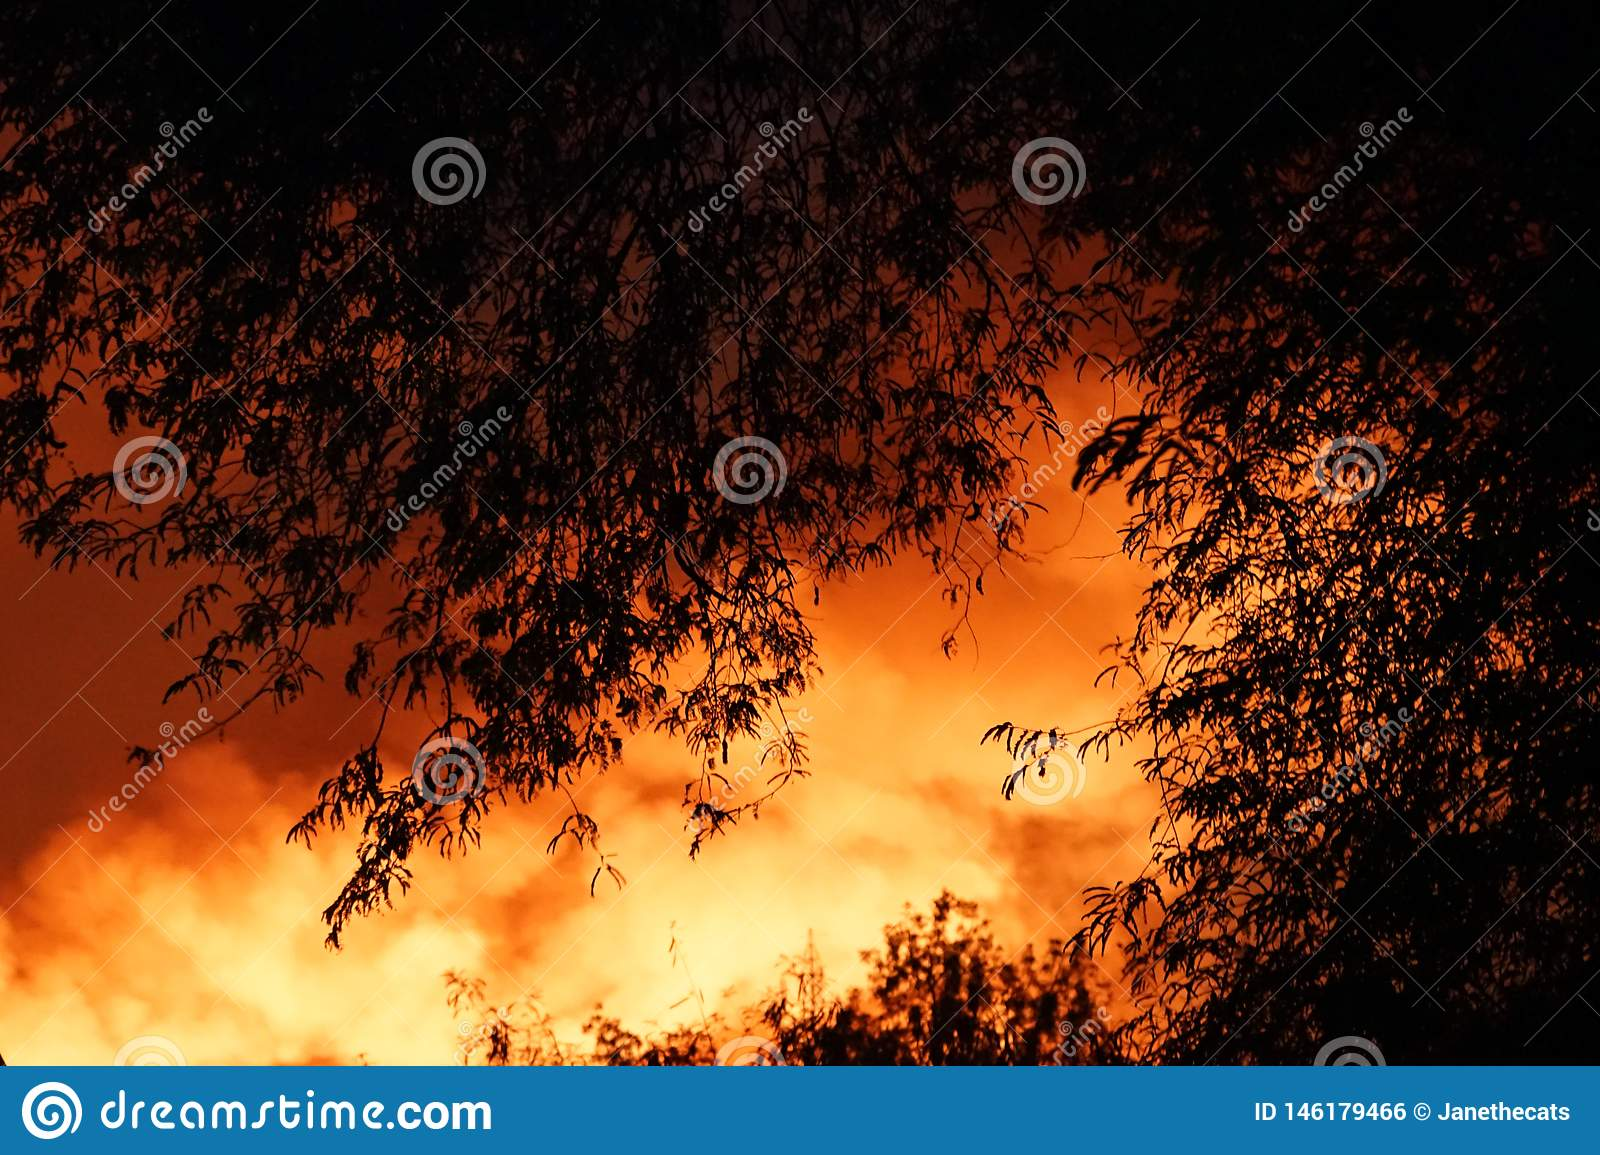 Forest Fire Burning Trees With A Smoke Over The Sky At Night